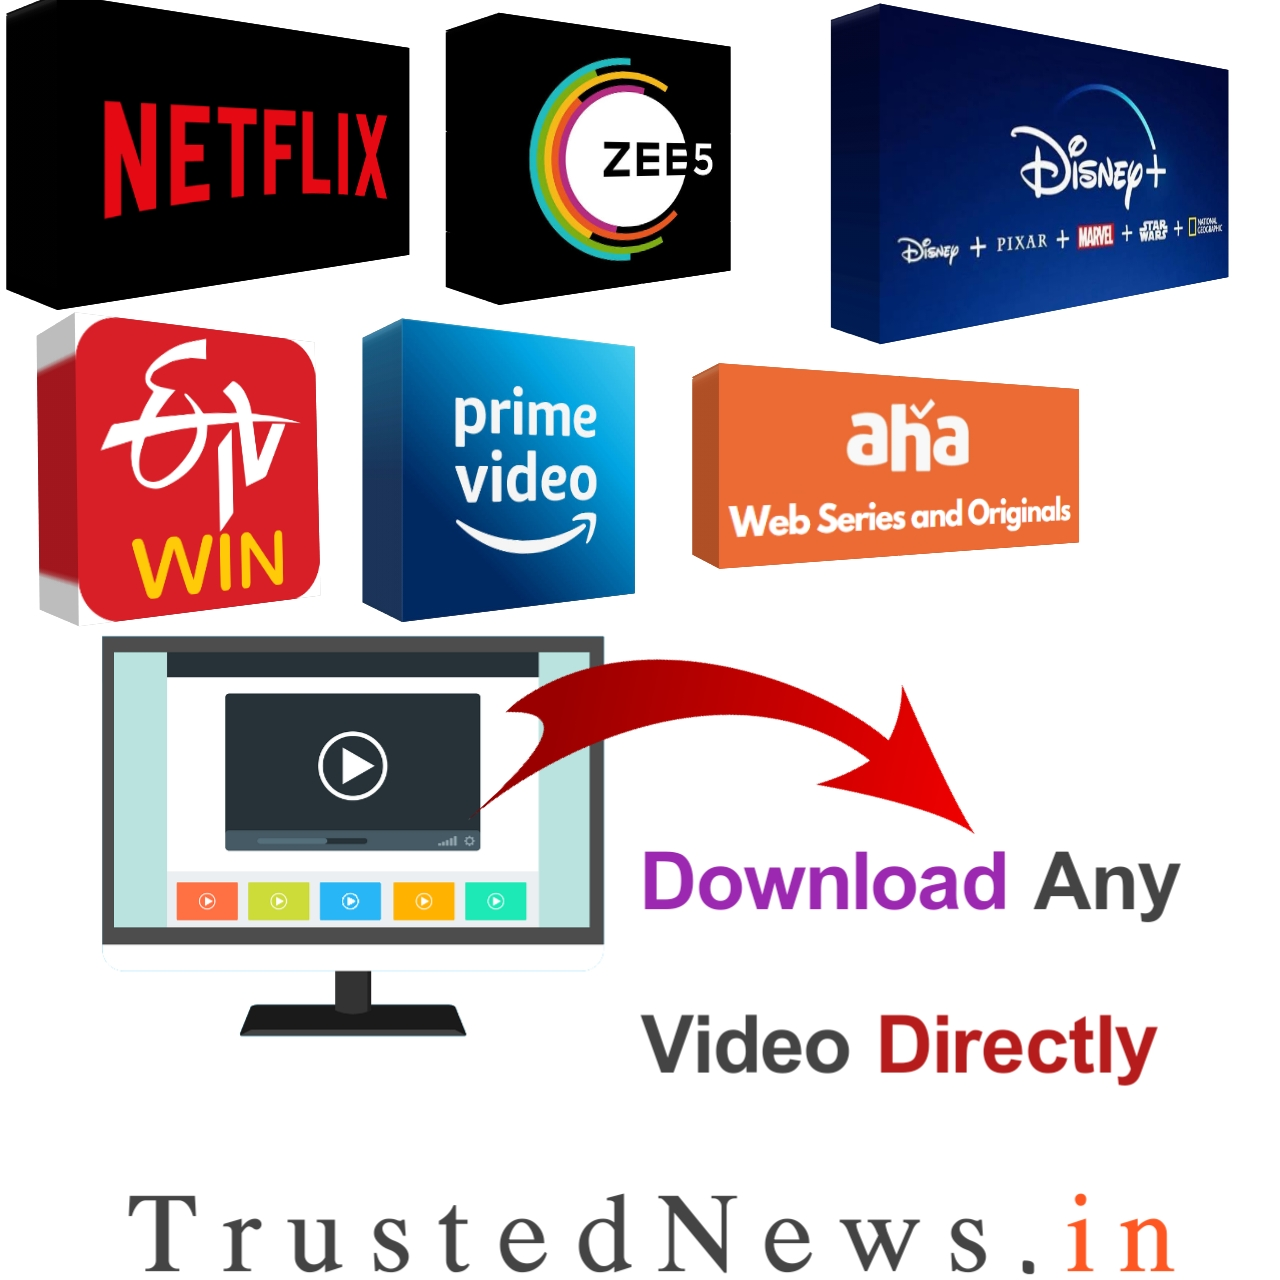 download videos from streaming websites